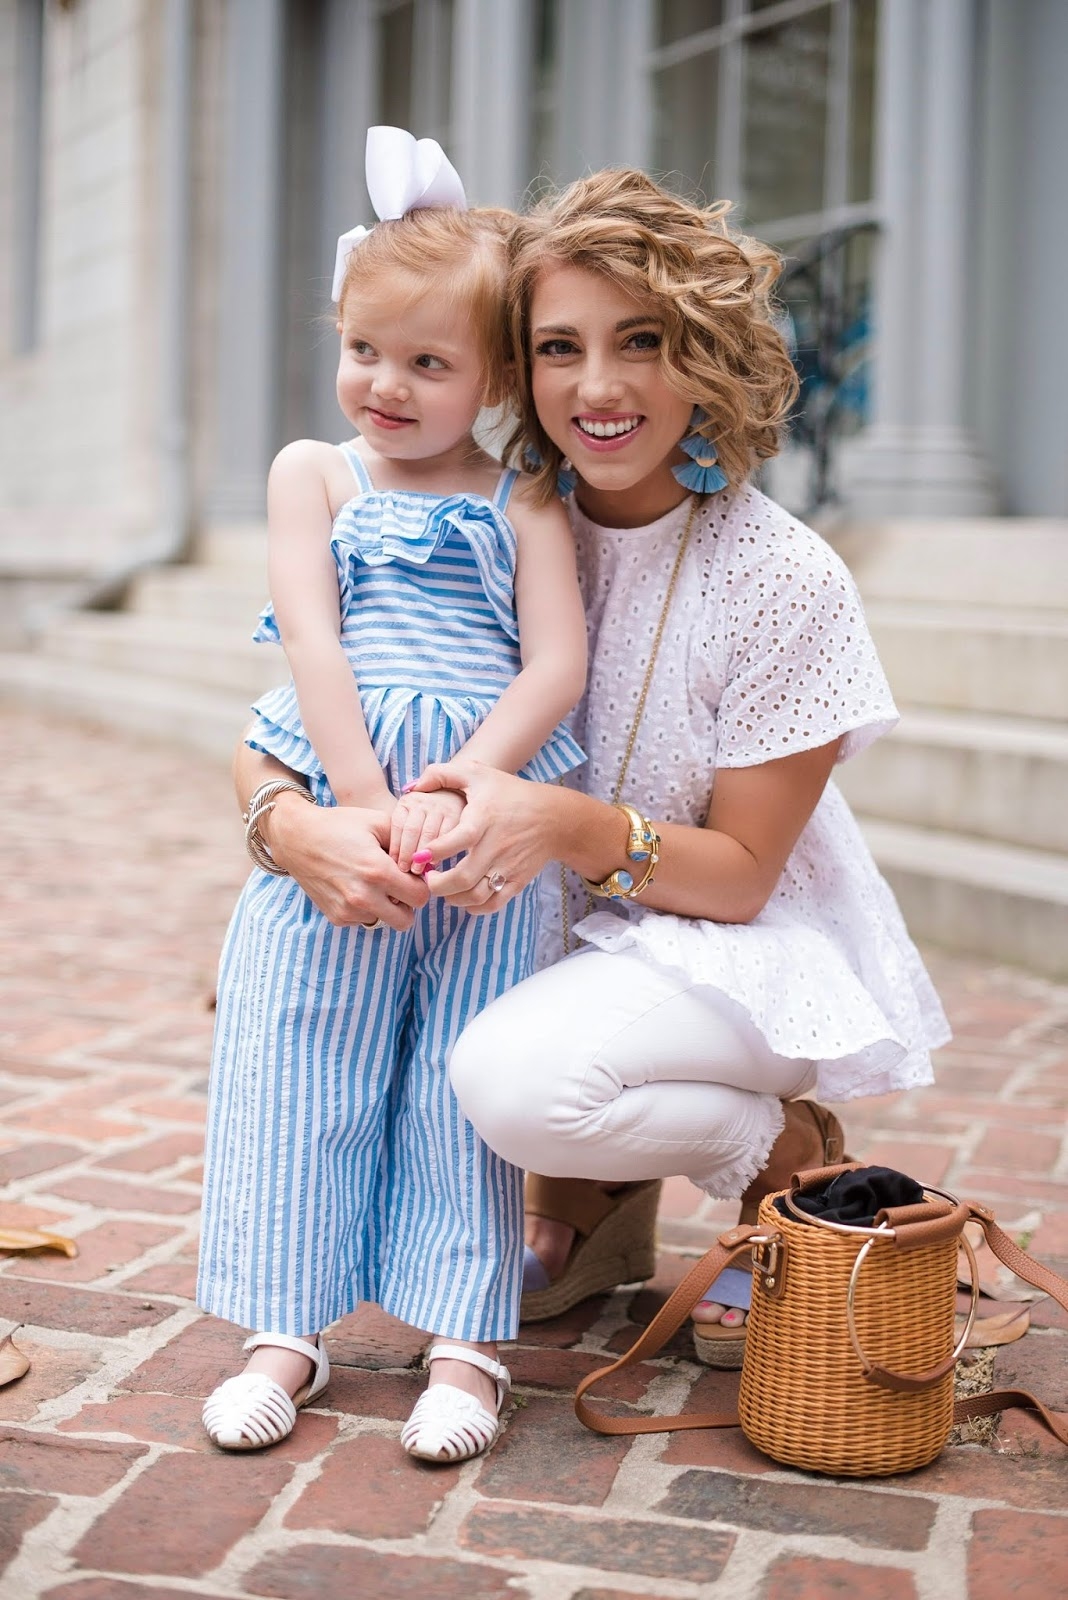 Mommy and me in blue and white - Something Delightful Blog